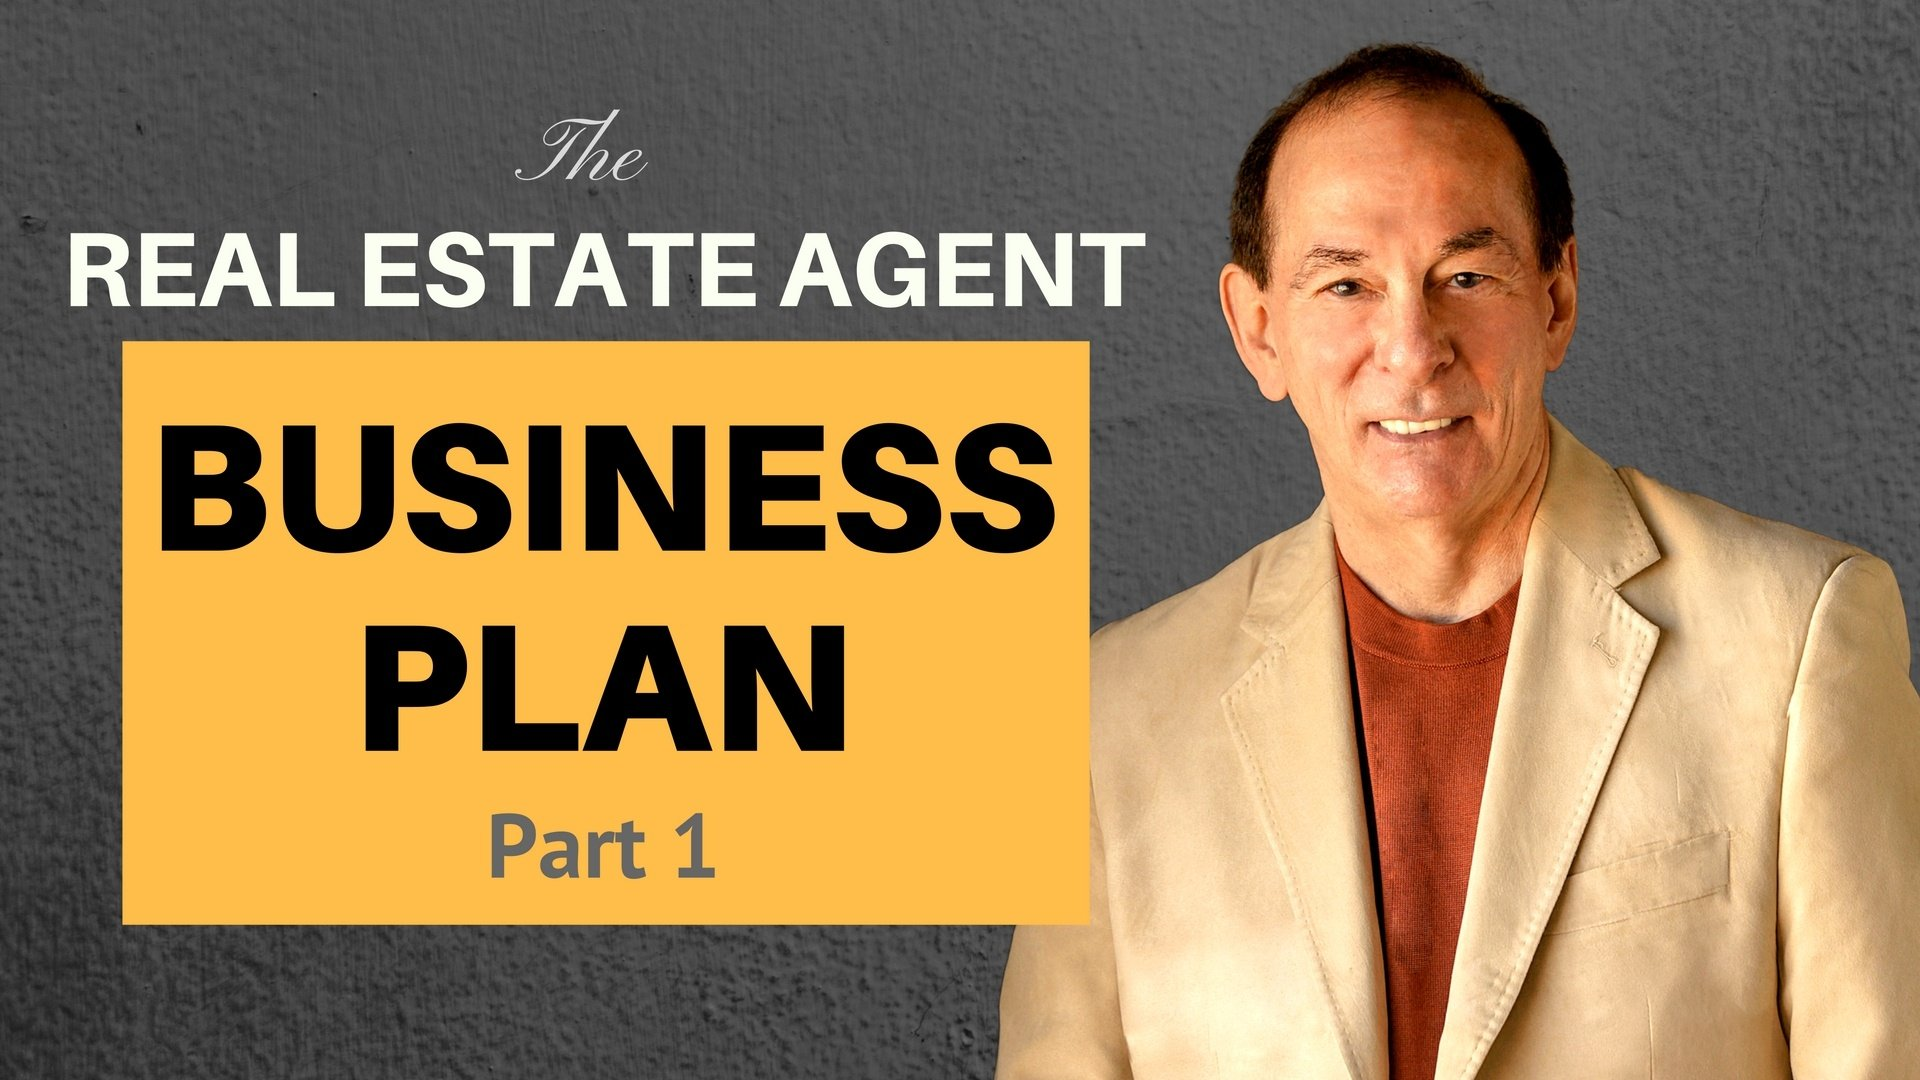 Real Estate Agent Business Plan - Part 1